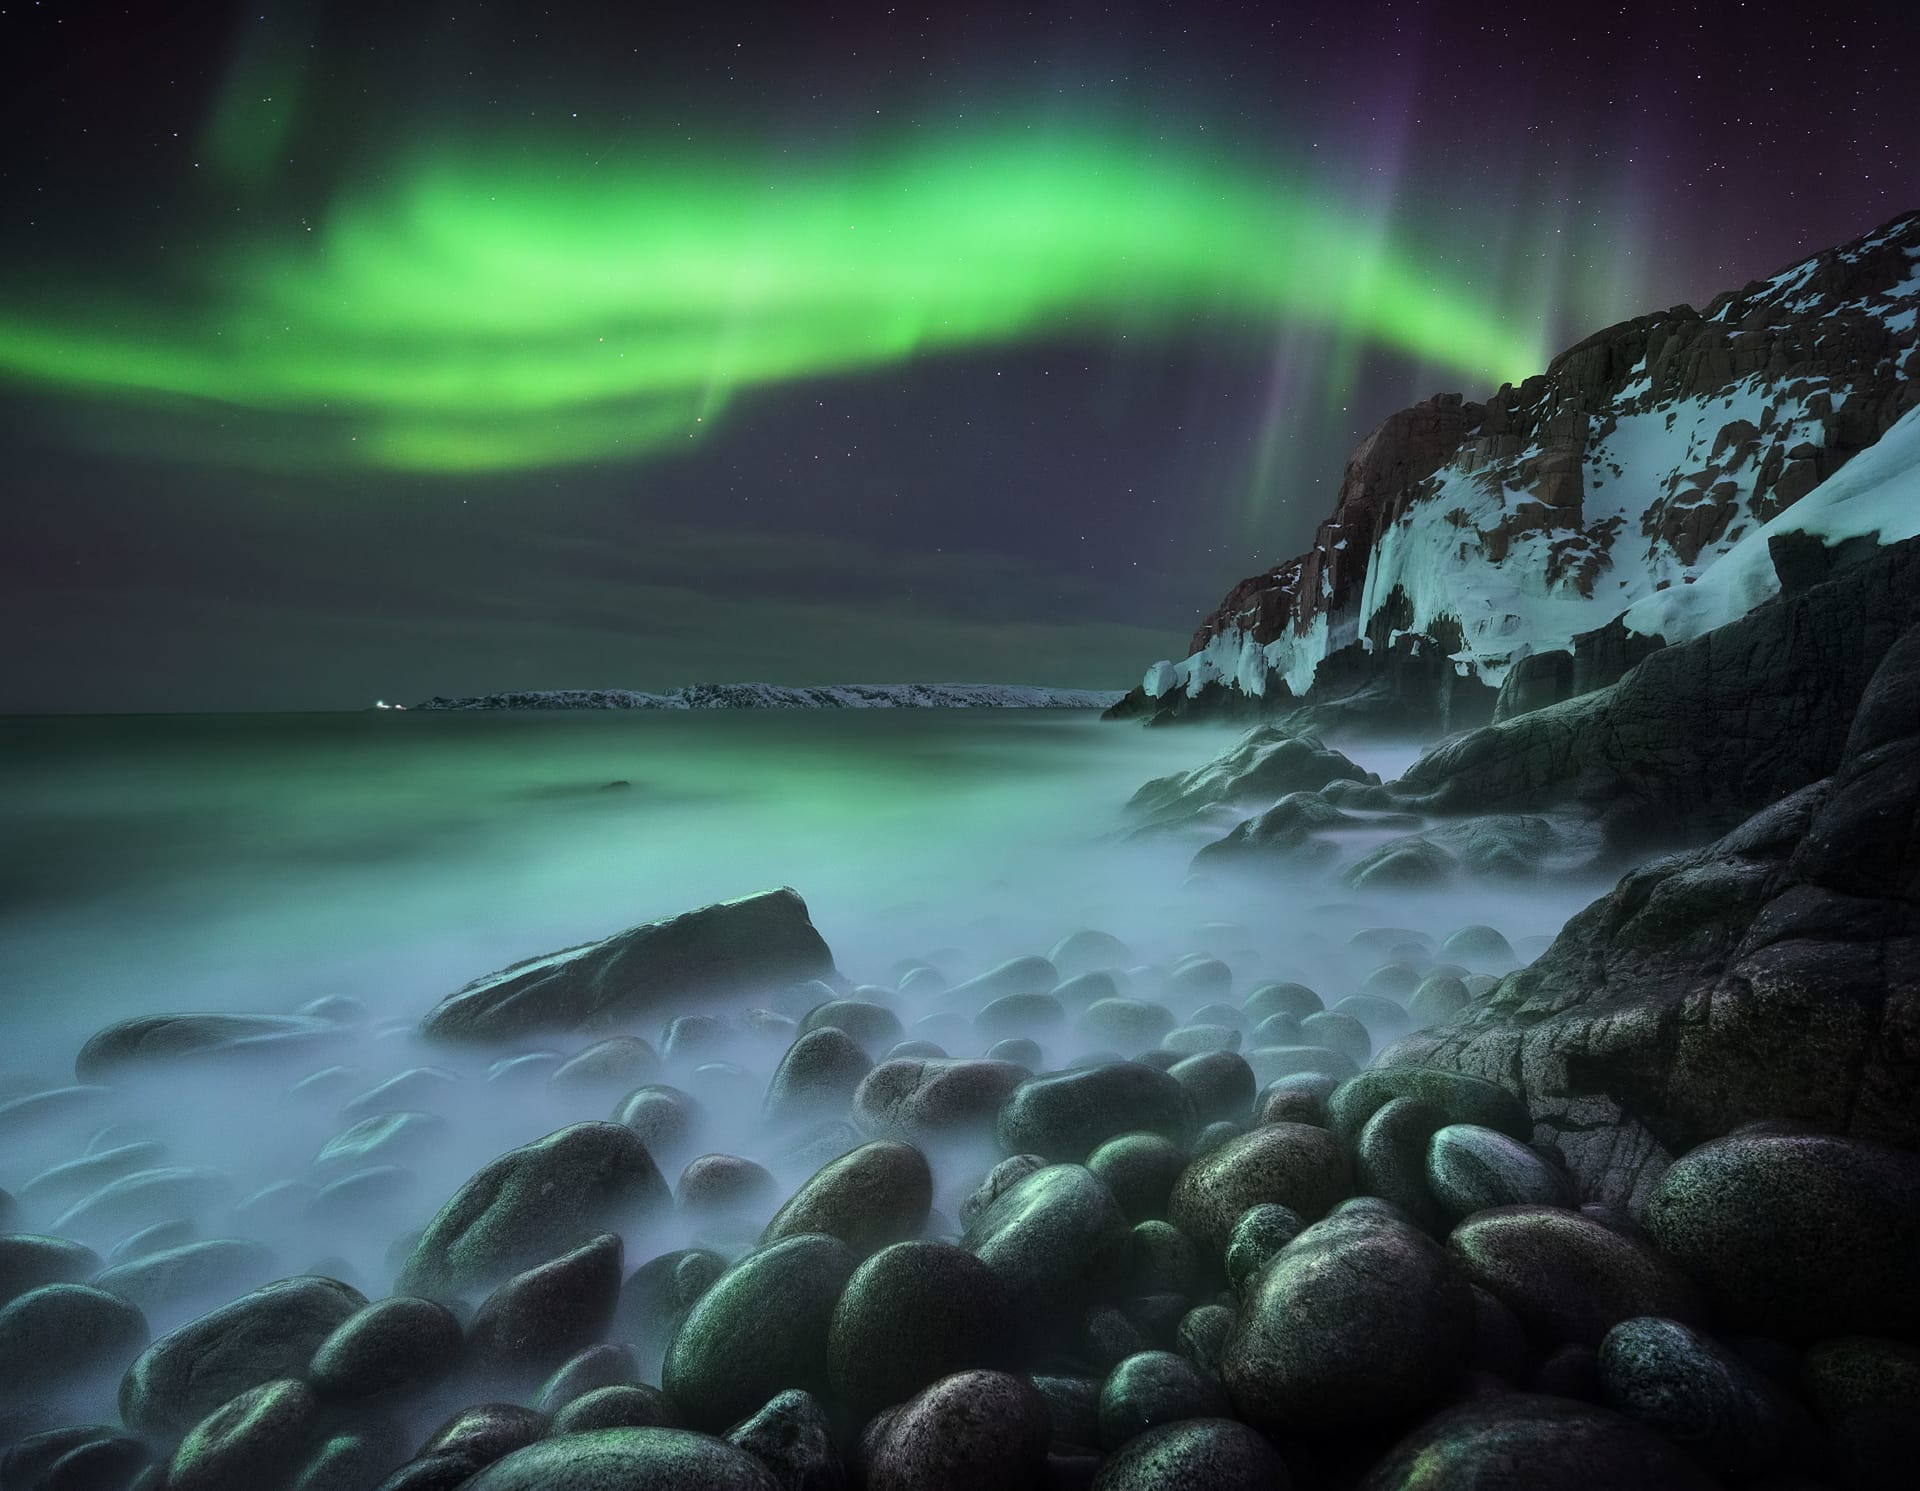 a1-Northern-Lights-photographer-of-the-year-Sergey-Korolev.jpg